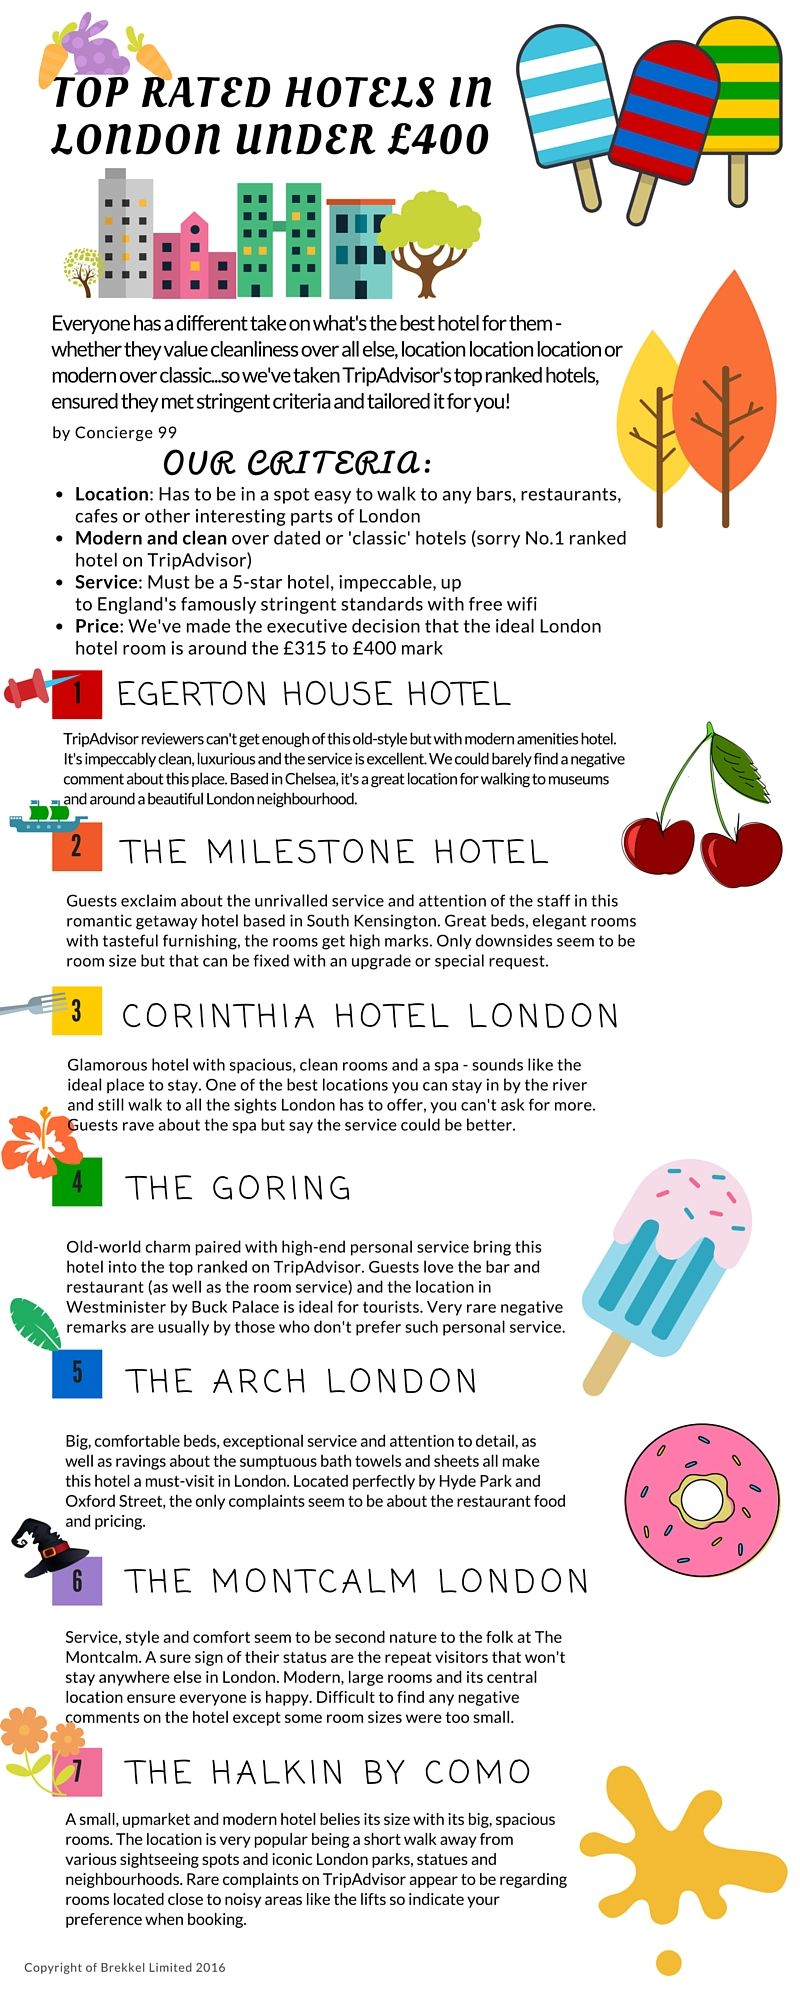 Everyone has a different take on what's the best hotel for them